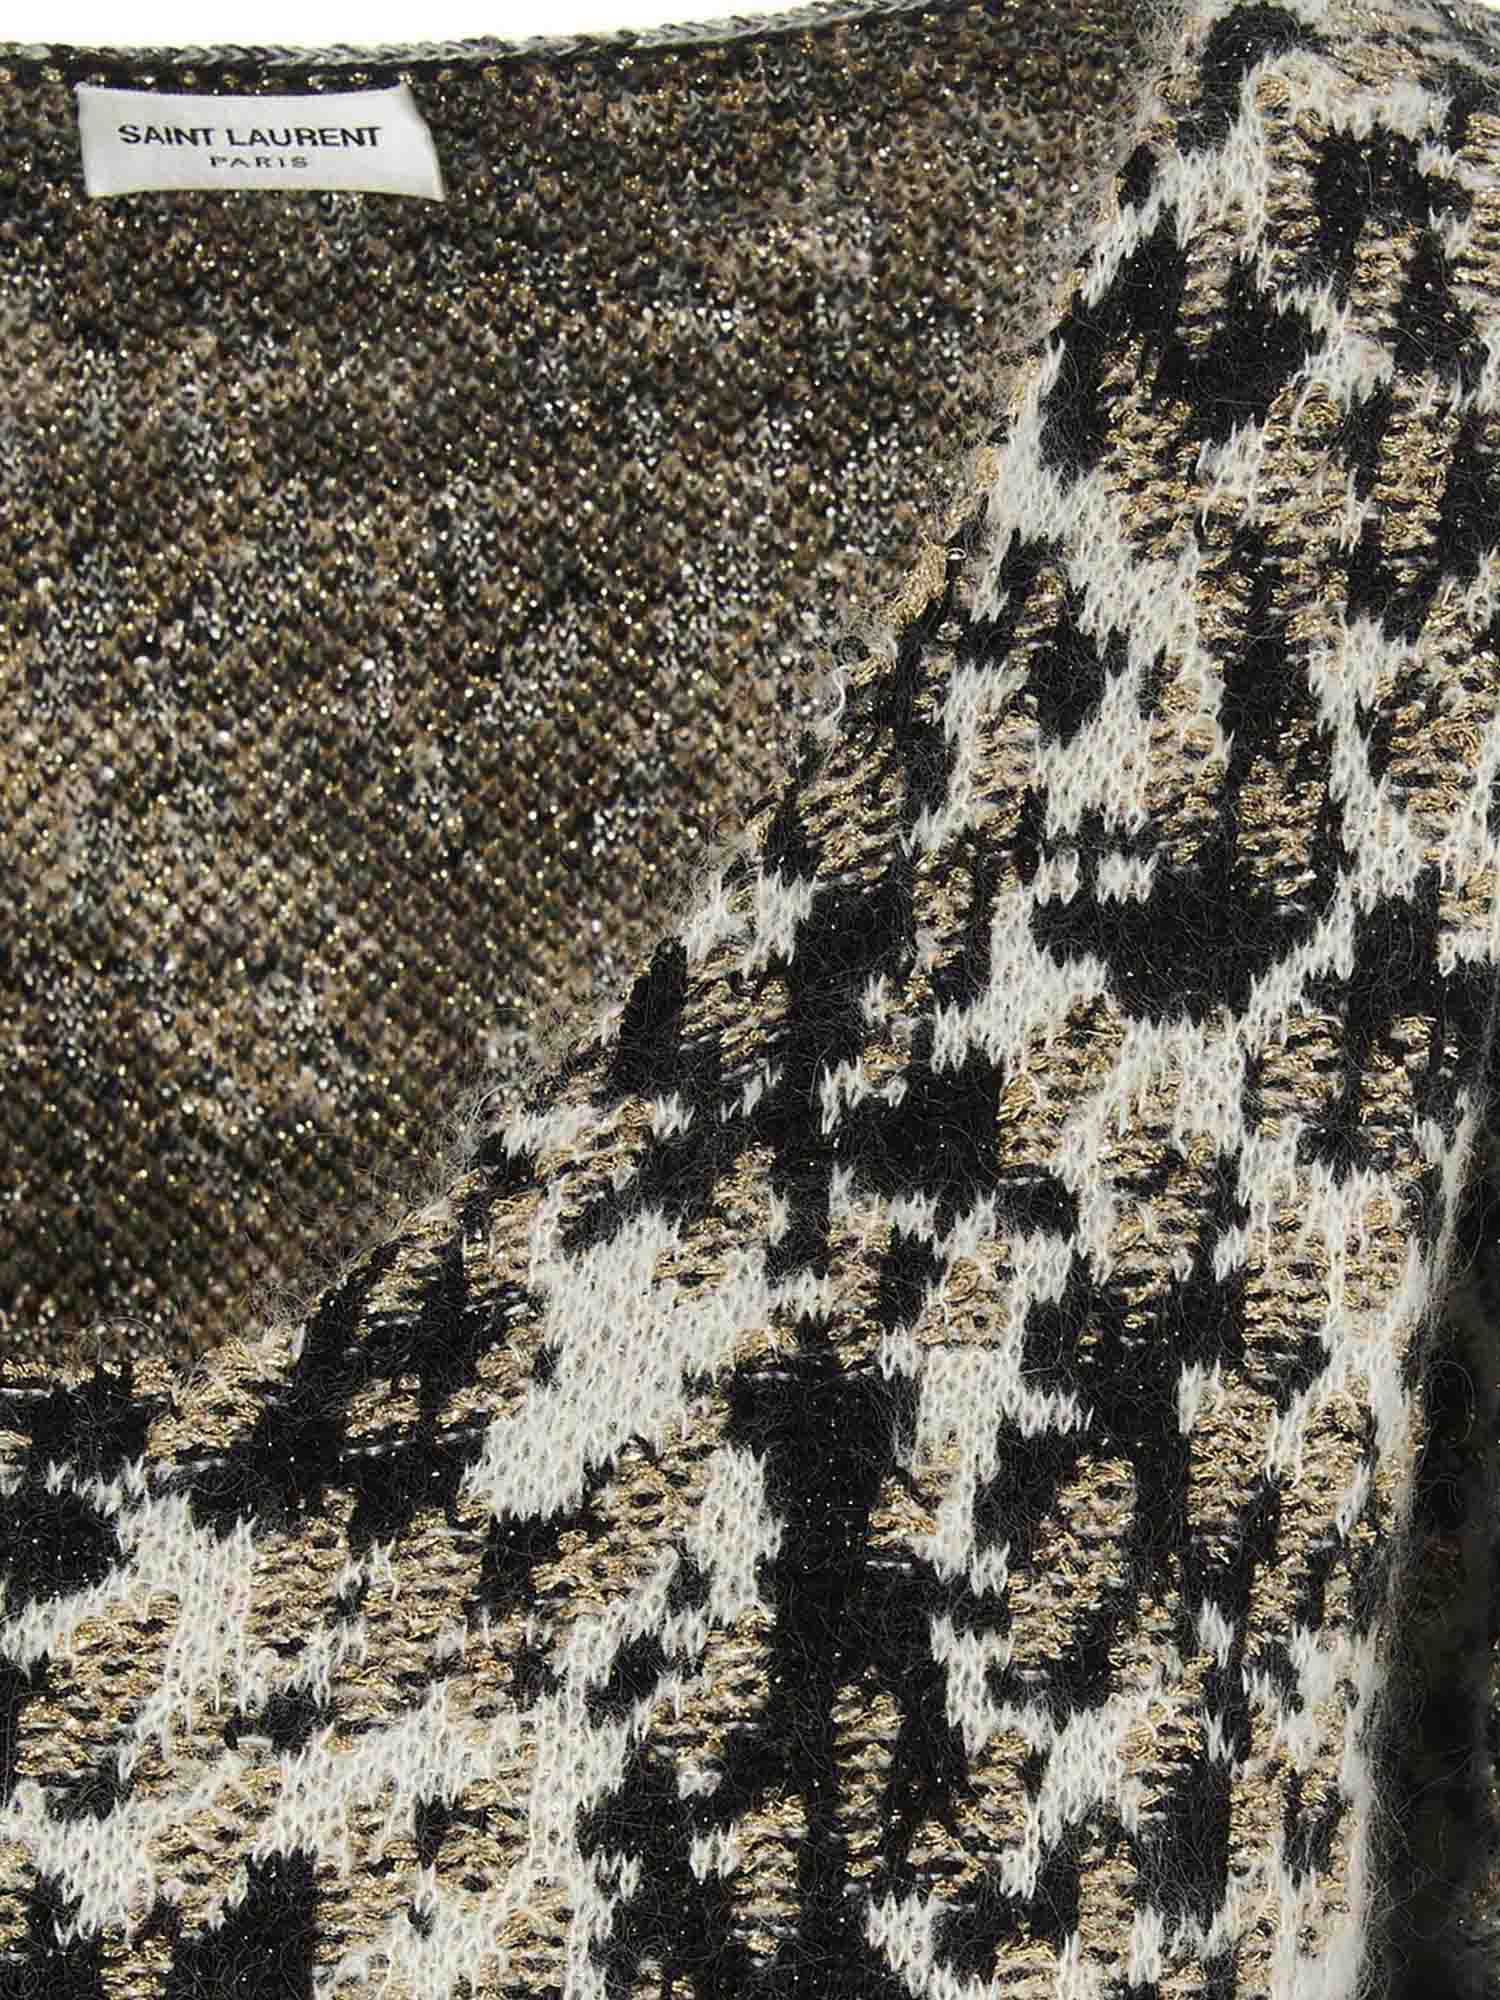 Saint Laurent ANIMALIER INTARSIA SWEATER